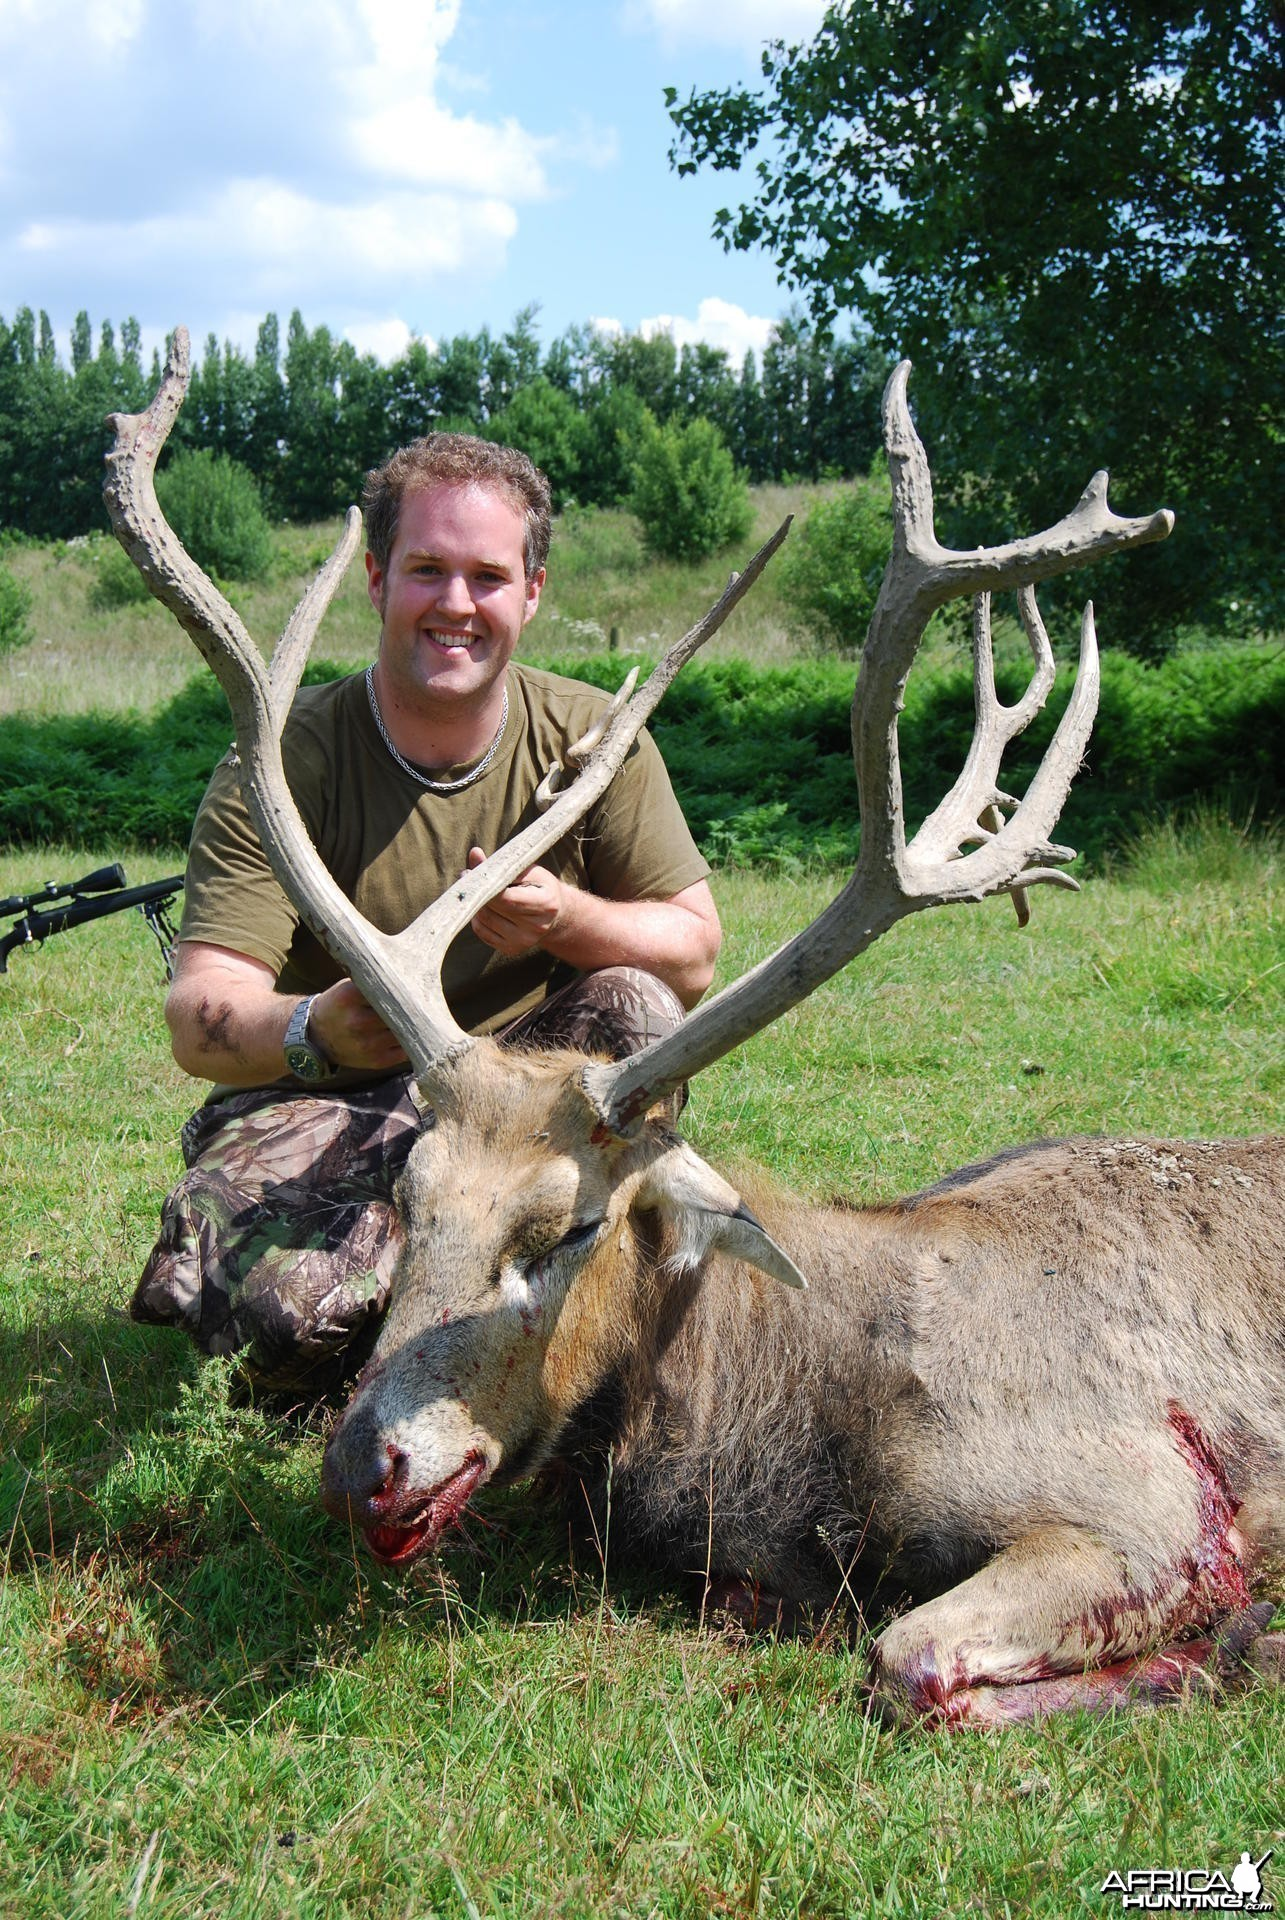 Hunting Pere David's Deer in the UK